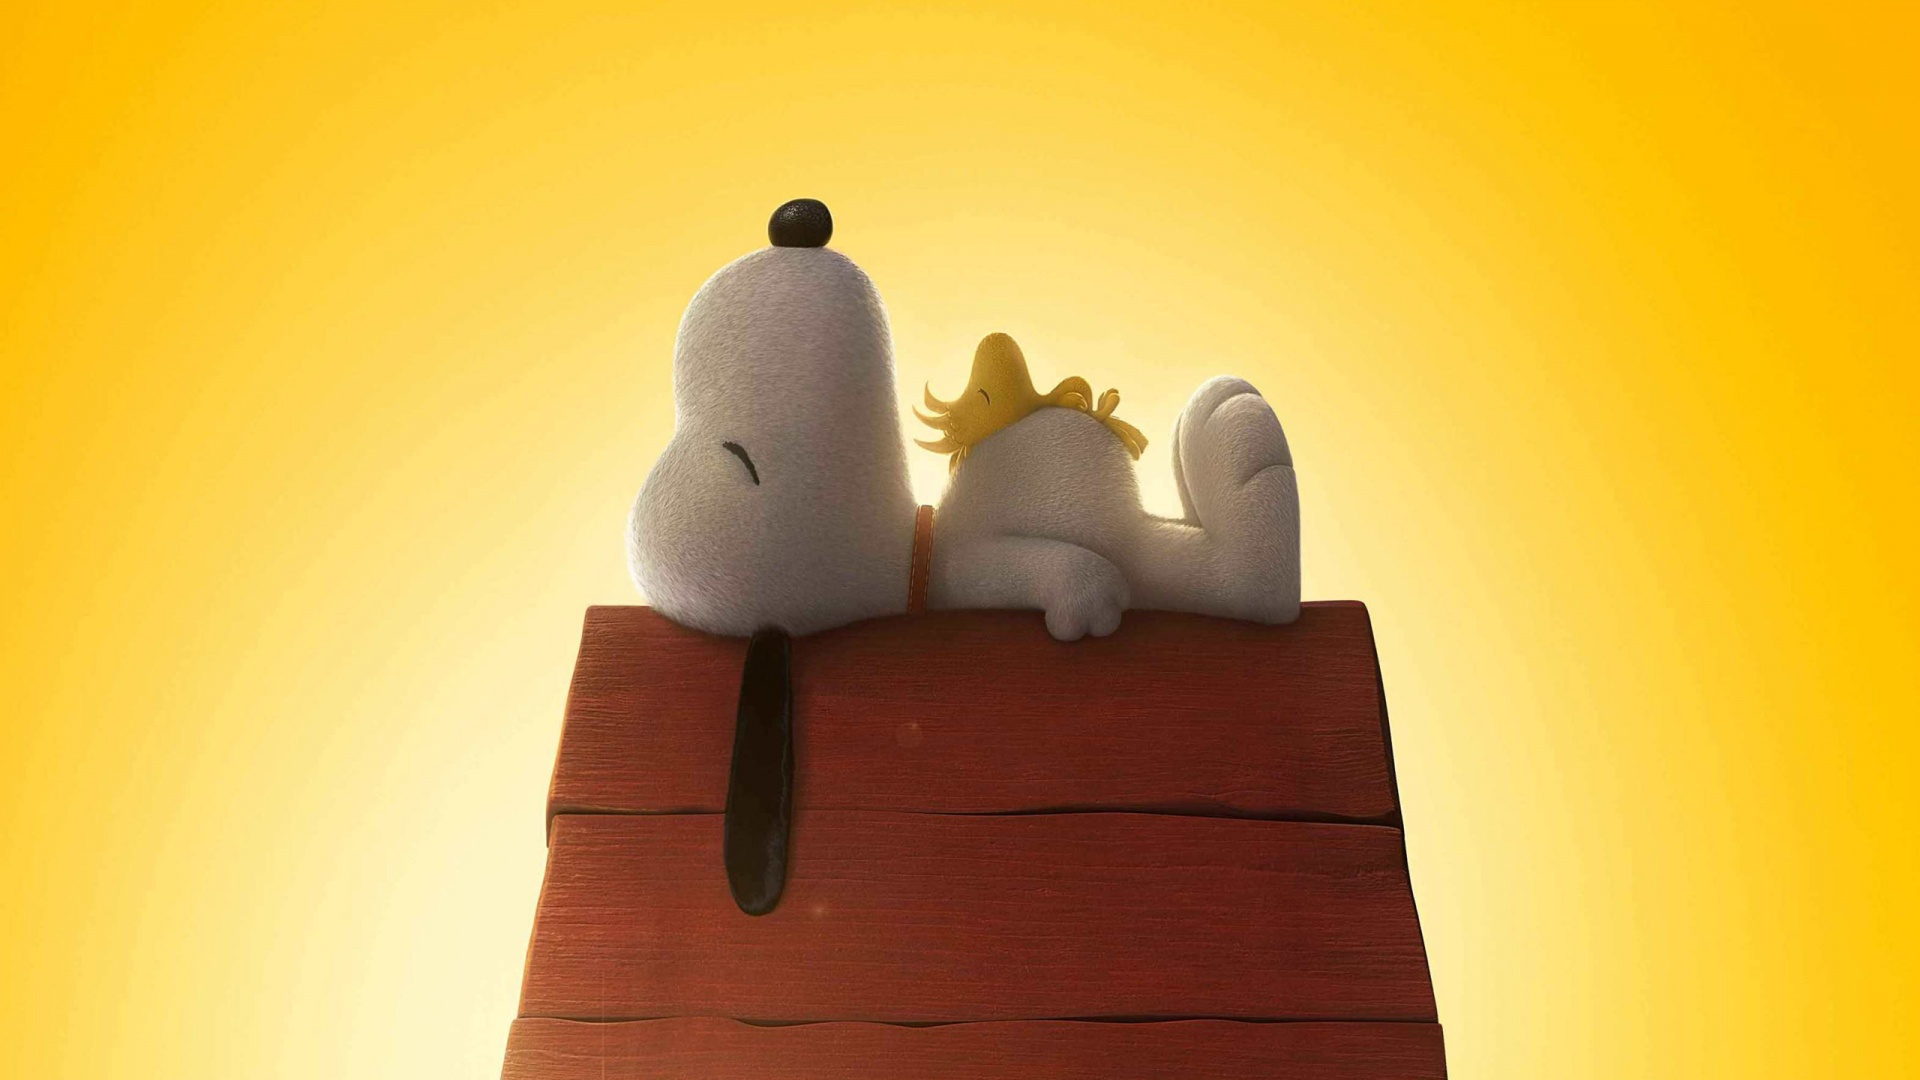 Peanuts 2015 Movie Wallpapers HD Wallpapers 1920x1080